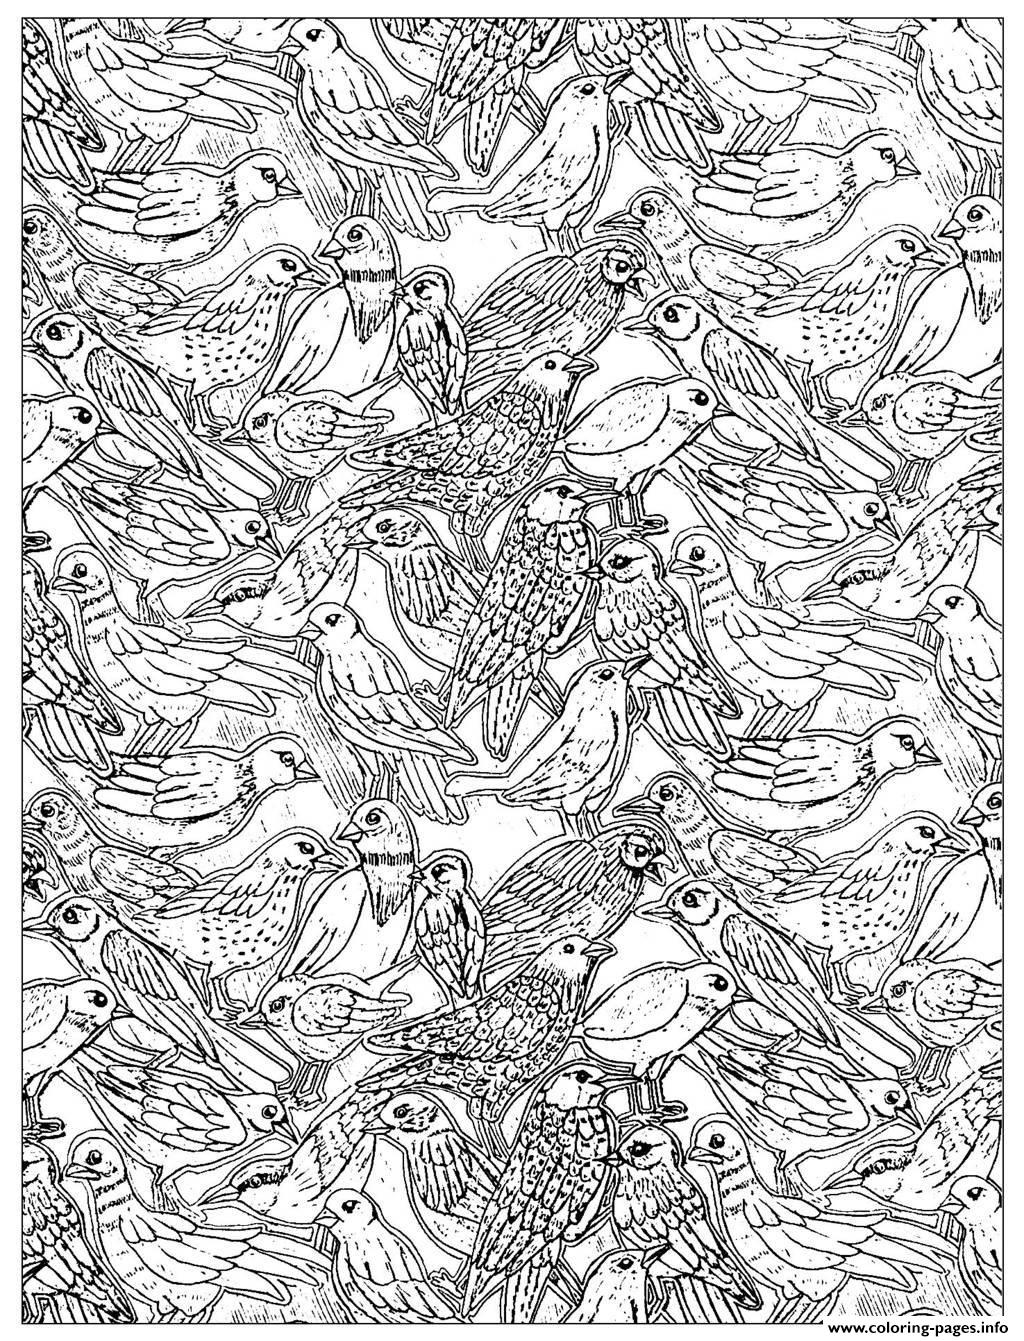 Adult Birds 2 Coloring Pages Printable